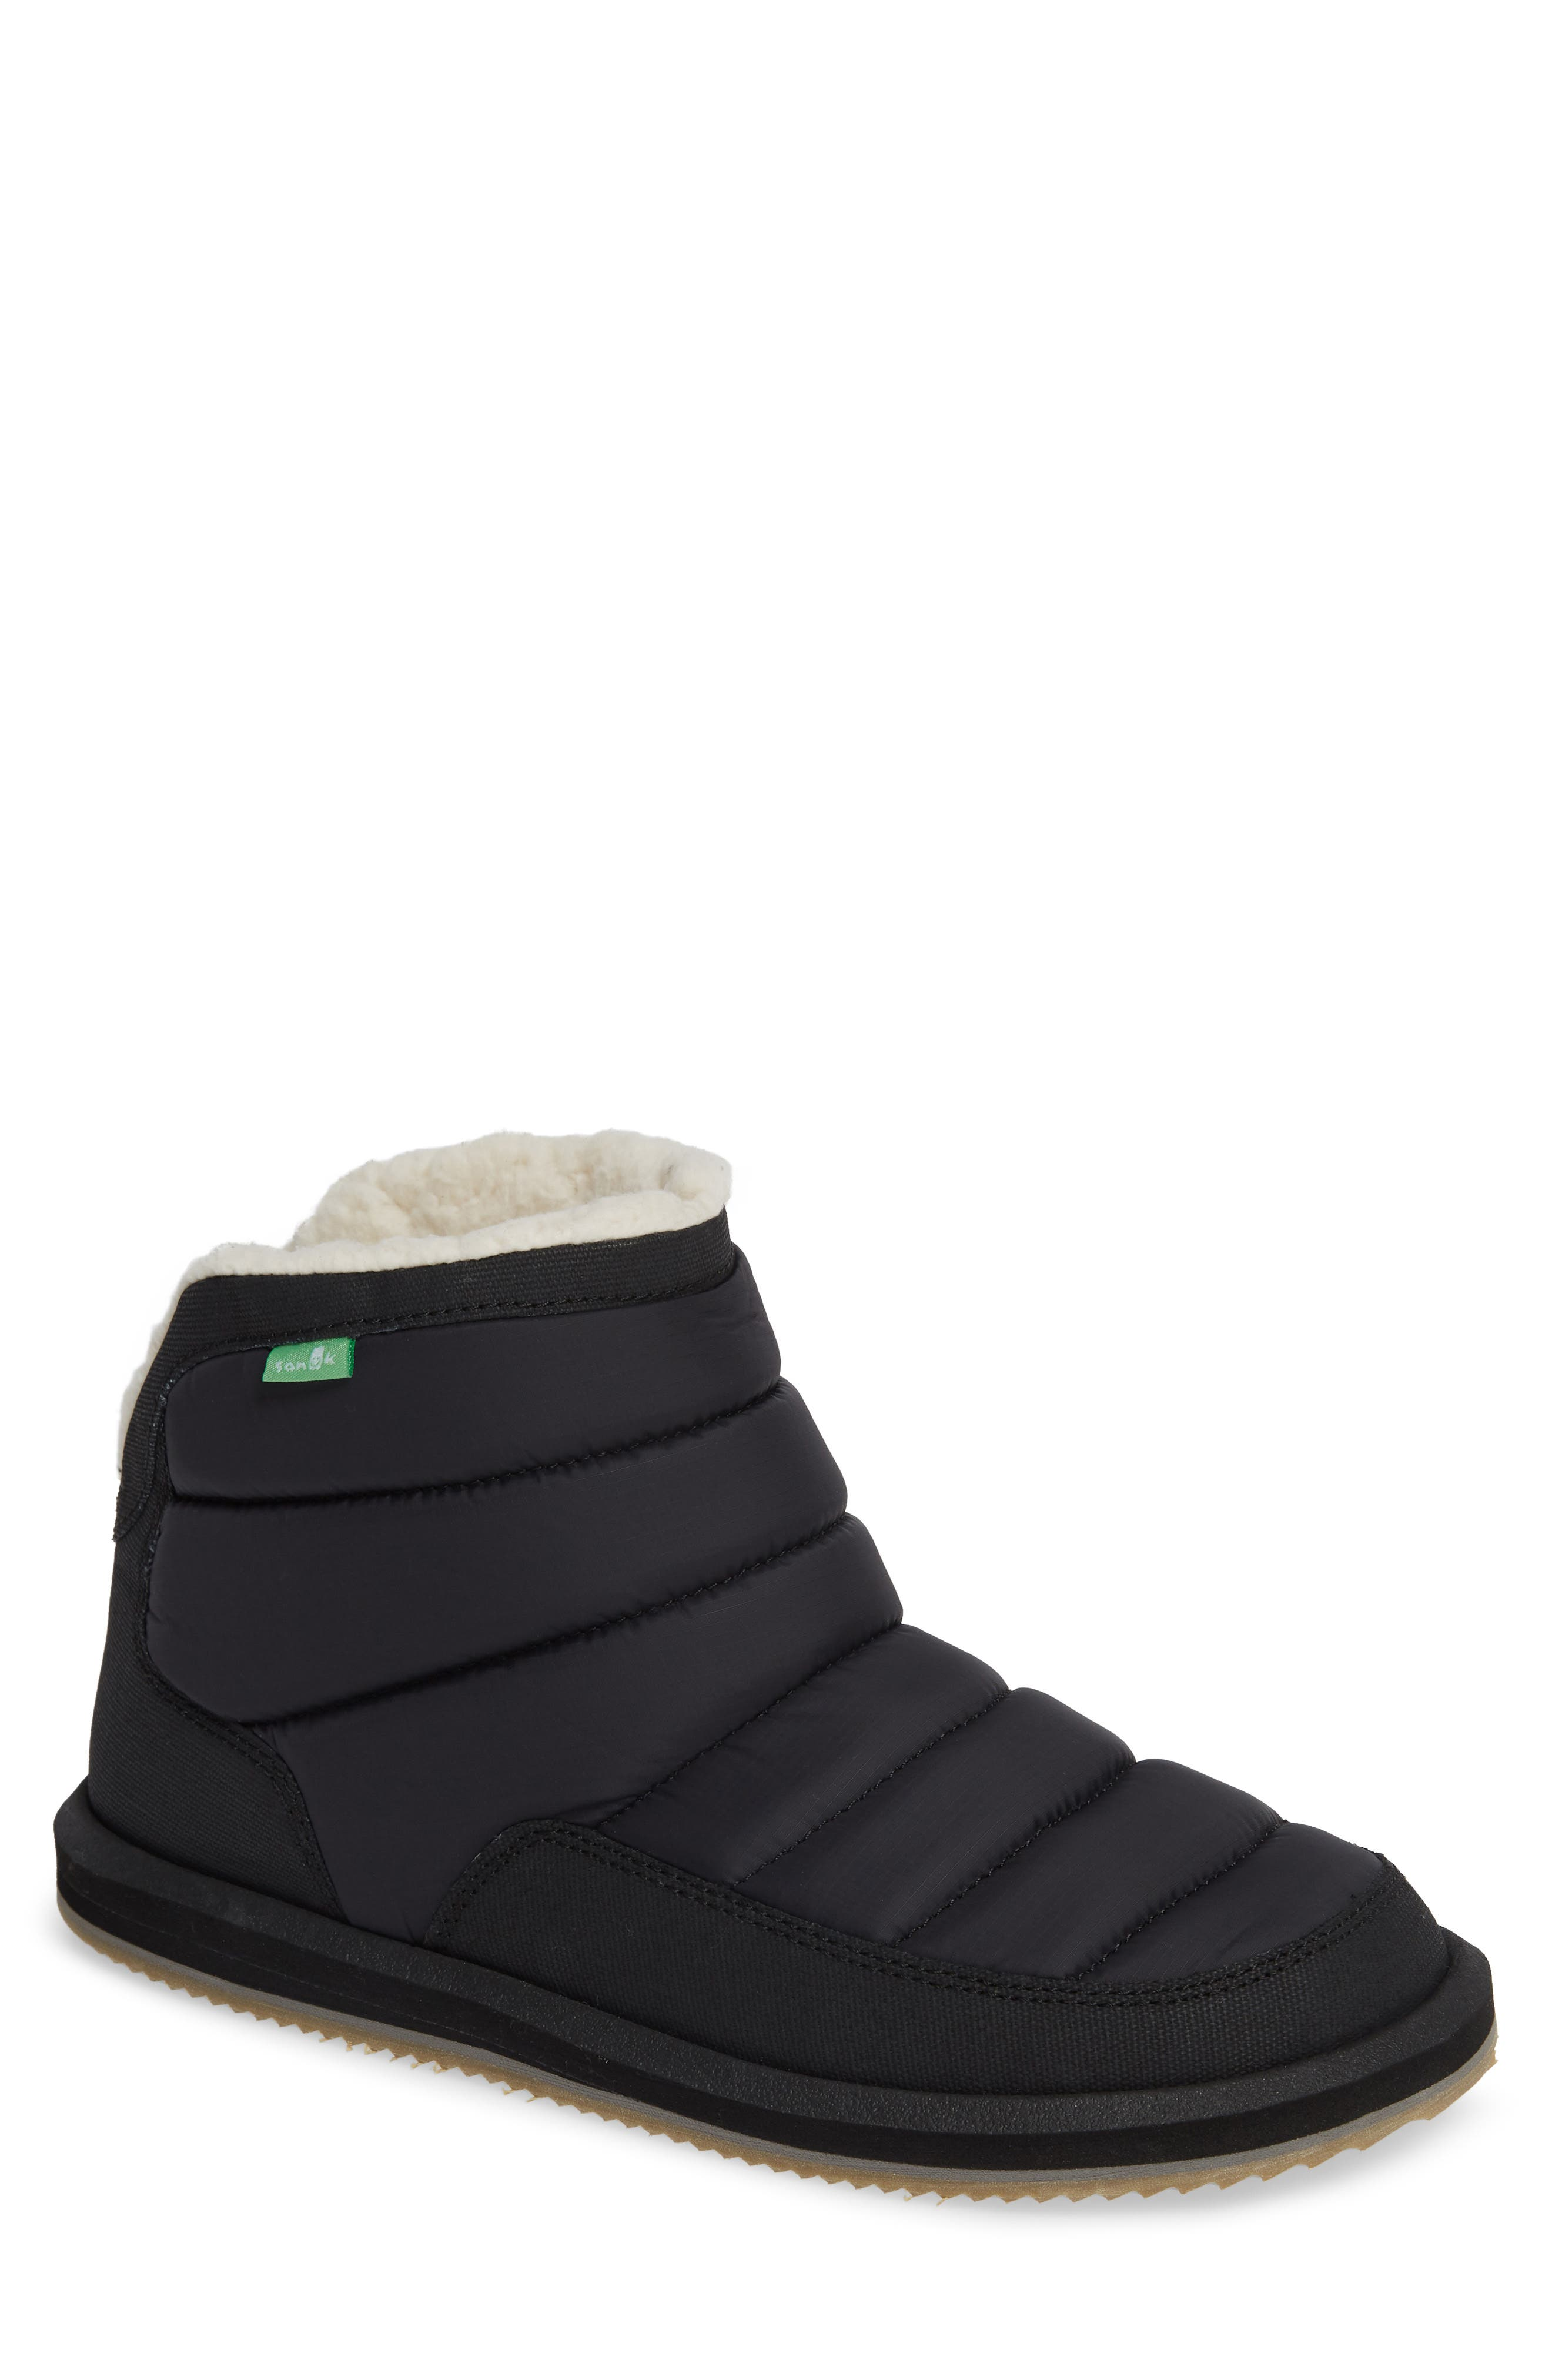 SANUK, Puff & Chill Weather Boot, Main thumbnail 1, color, 001